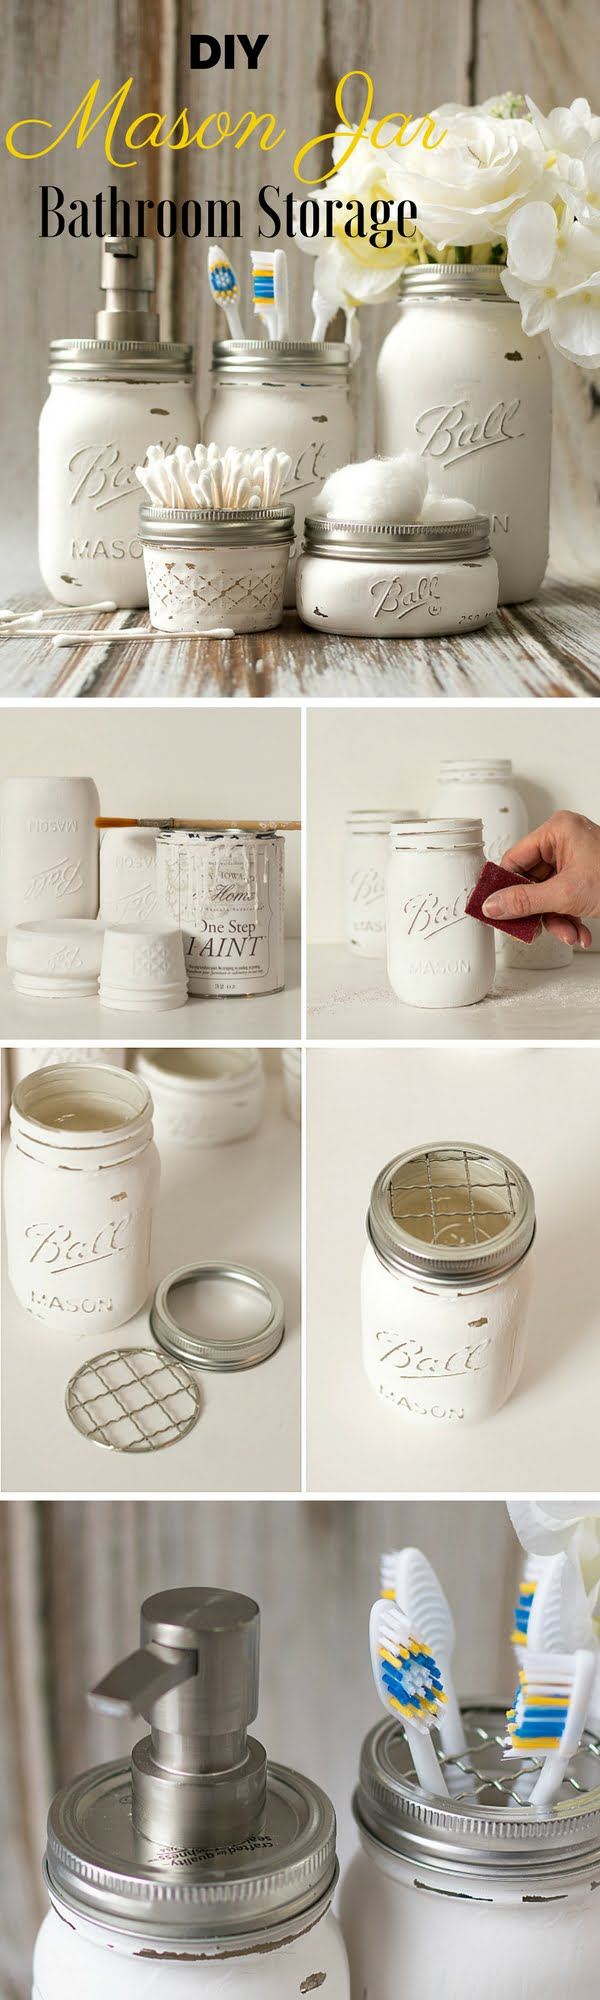 How to make  Mason Jar Bathroom Storage